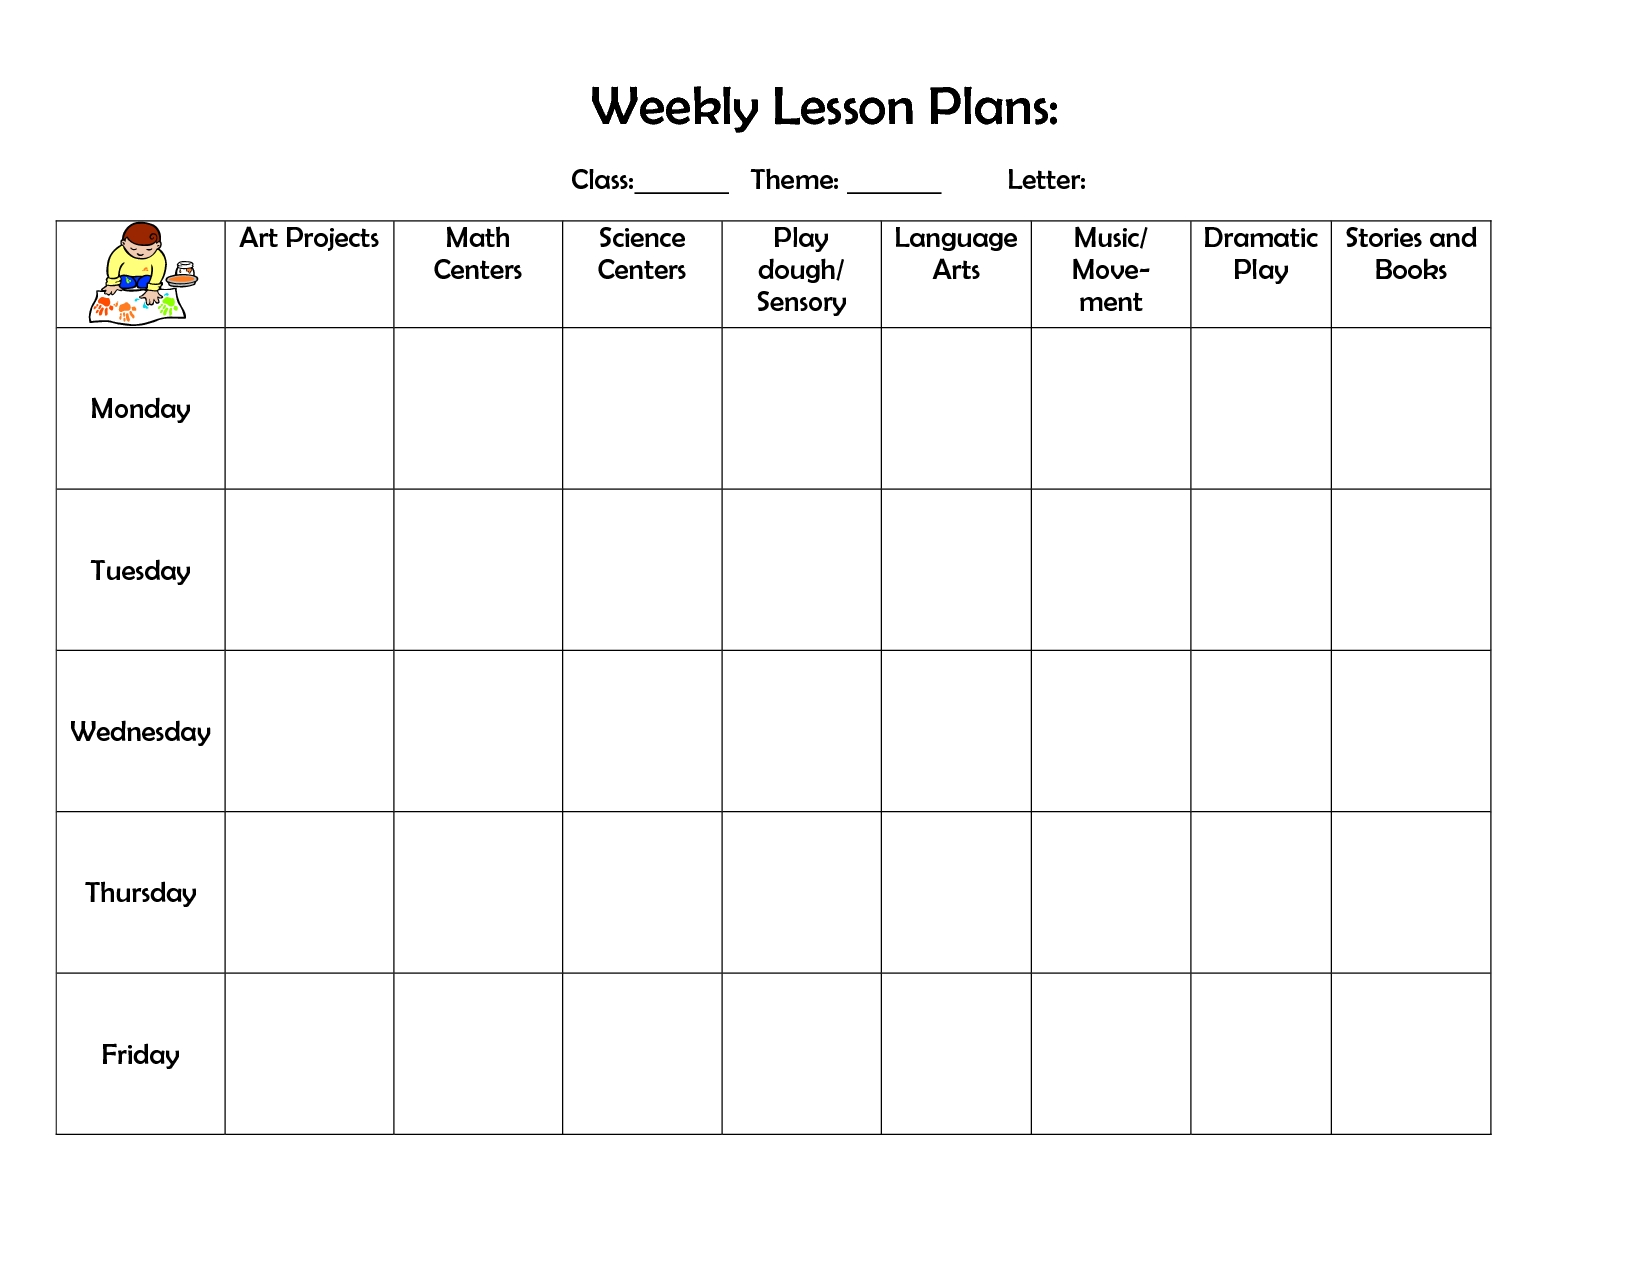 Free Lesson Plan Templates-20+ Word, Pdf Format Download | All Form with One Year Calendar Lesson Plan Templates